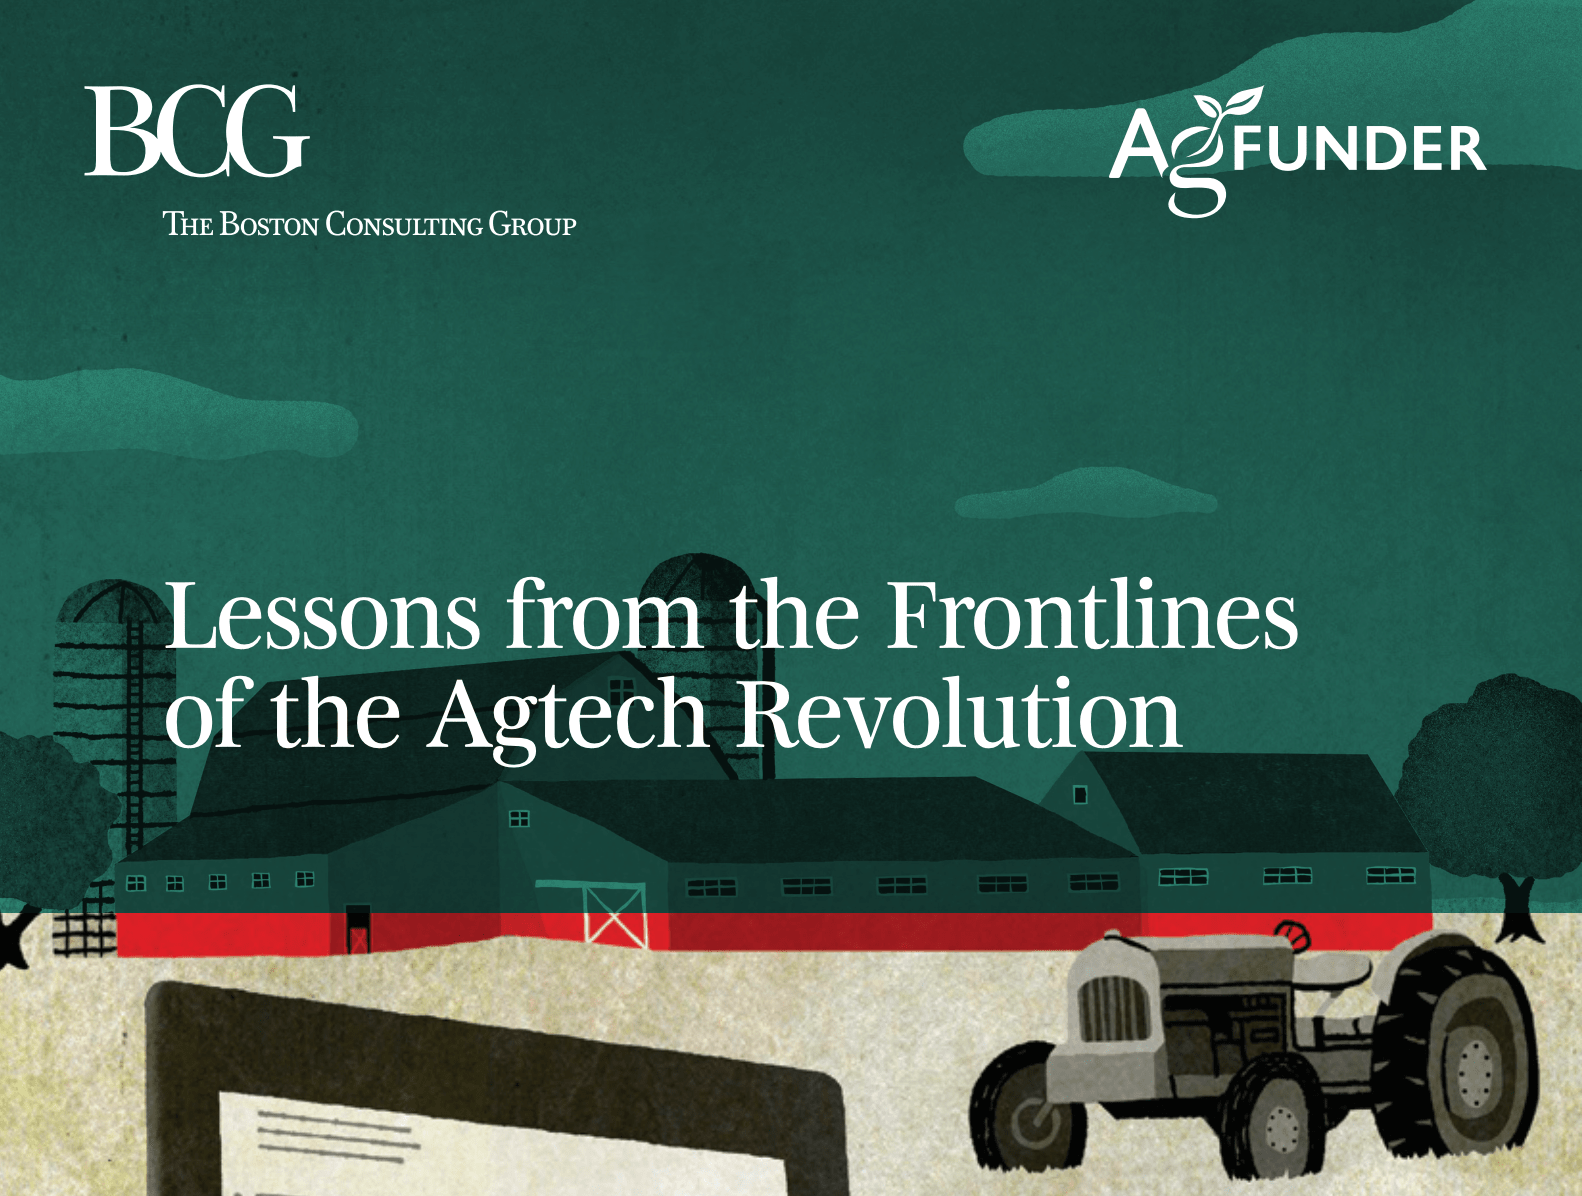 Lessons from the Frontlines of the Agtech Revolution